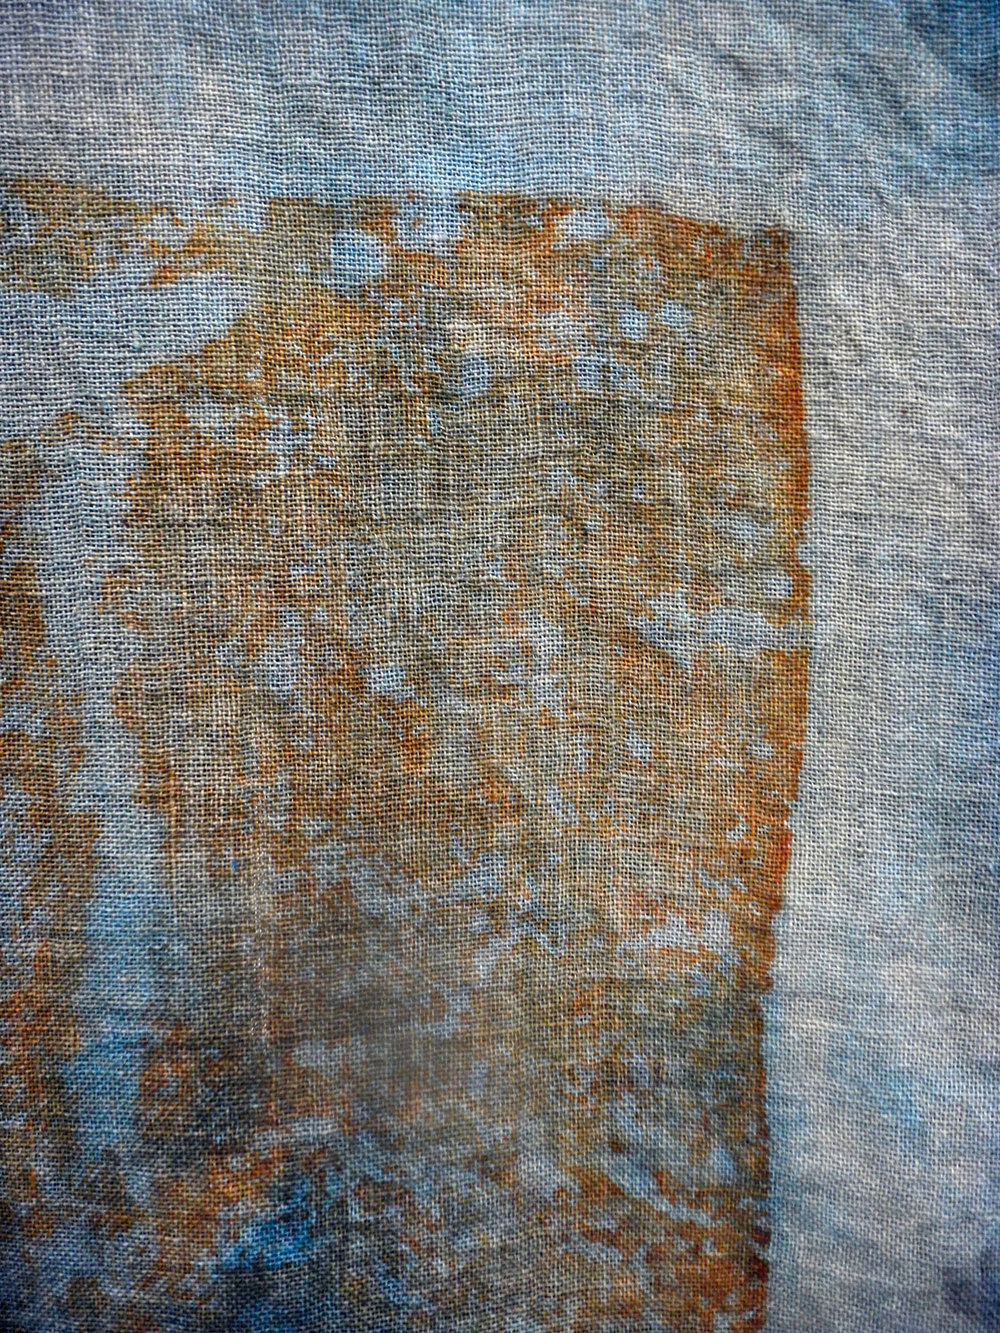 linen_rust_medium_detail.jpg